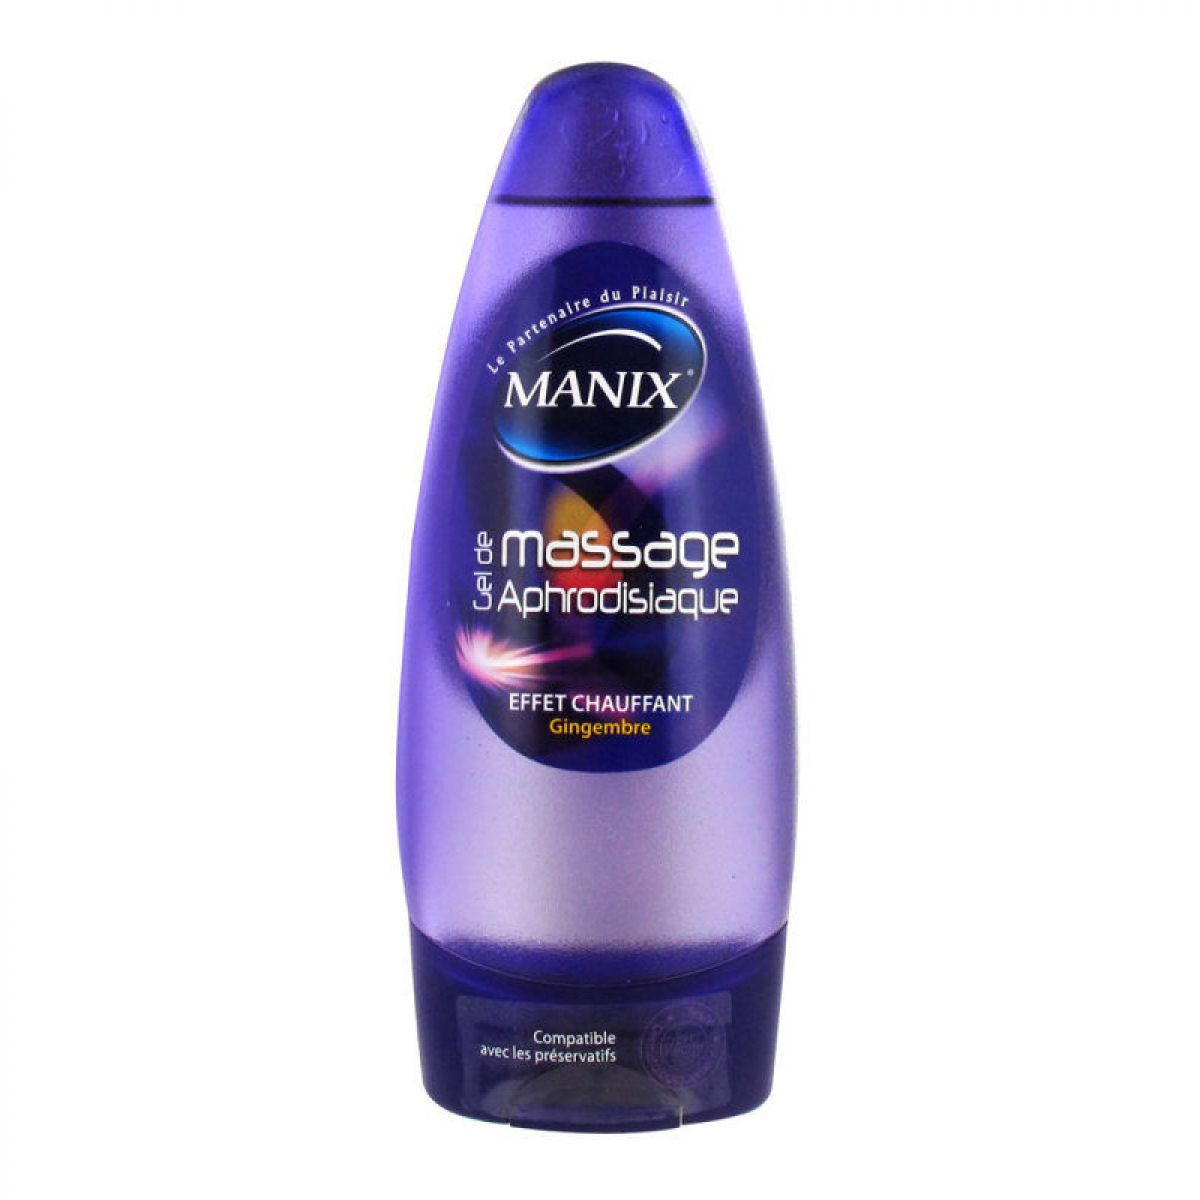 Manix - Gel de massage aphrodisiaque - Gingembre - 200ml